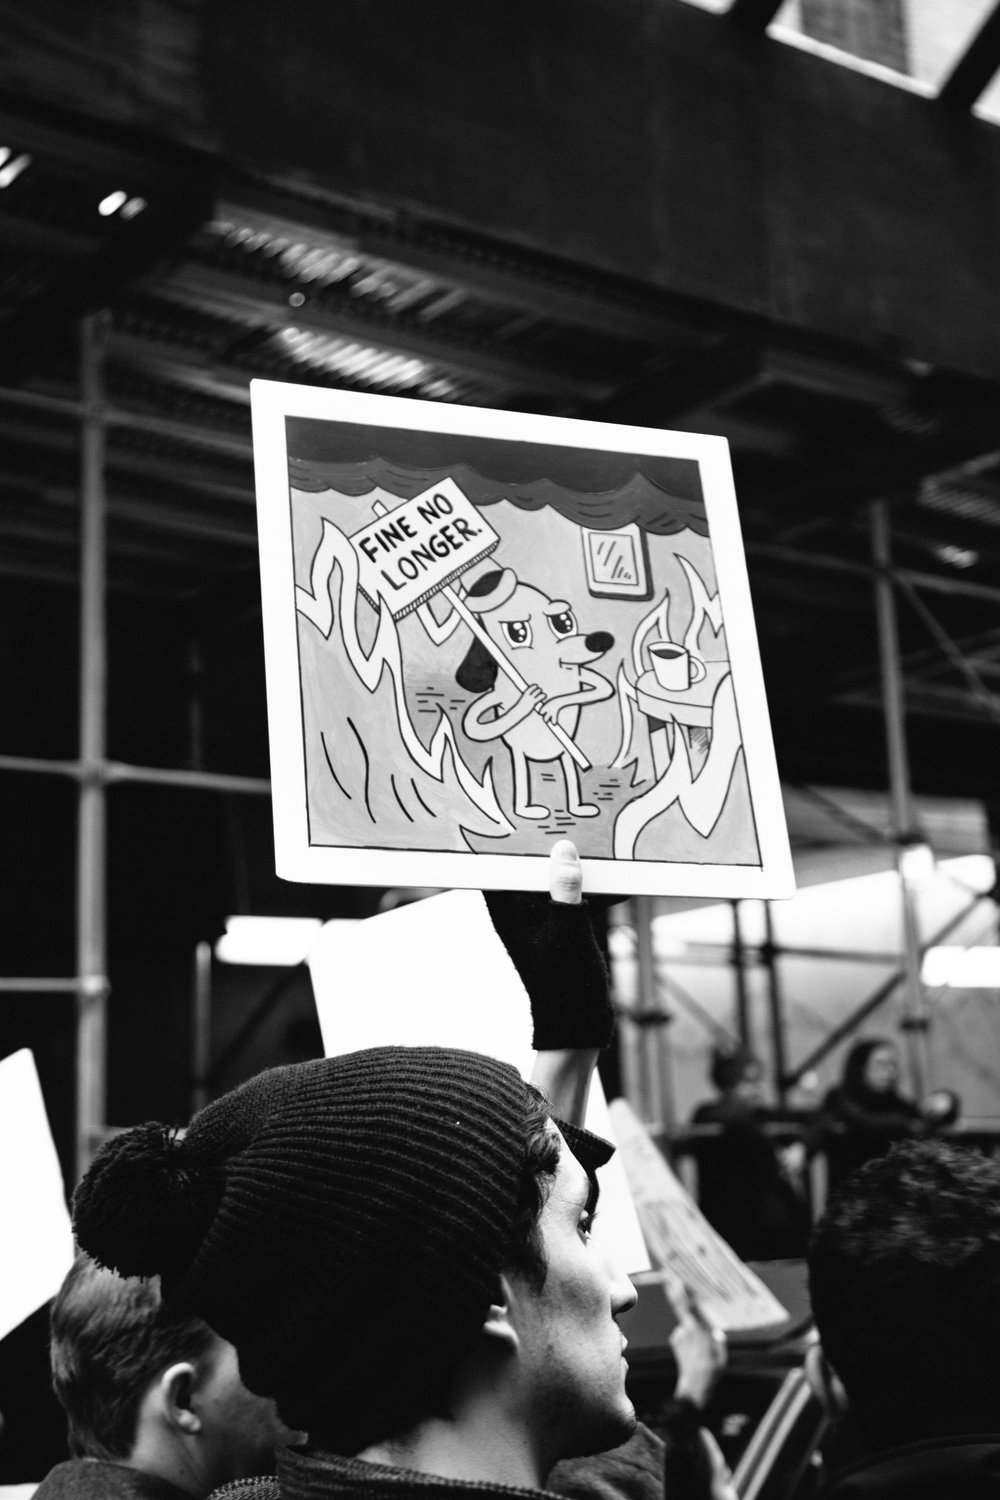 women's march on washington nyc protest signs-77.jpg